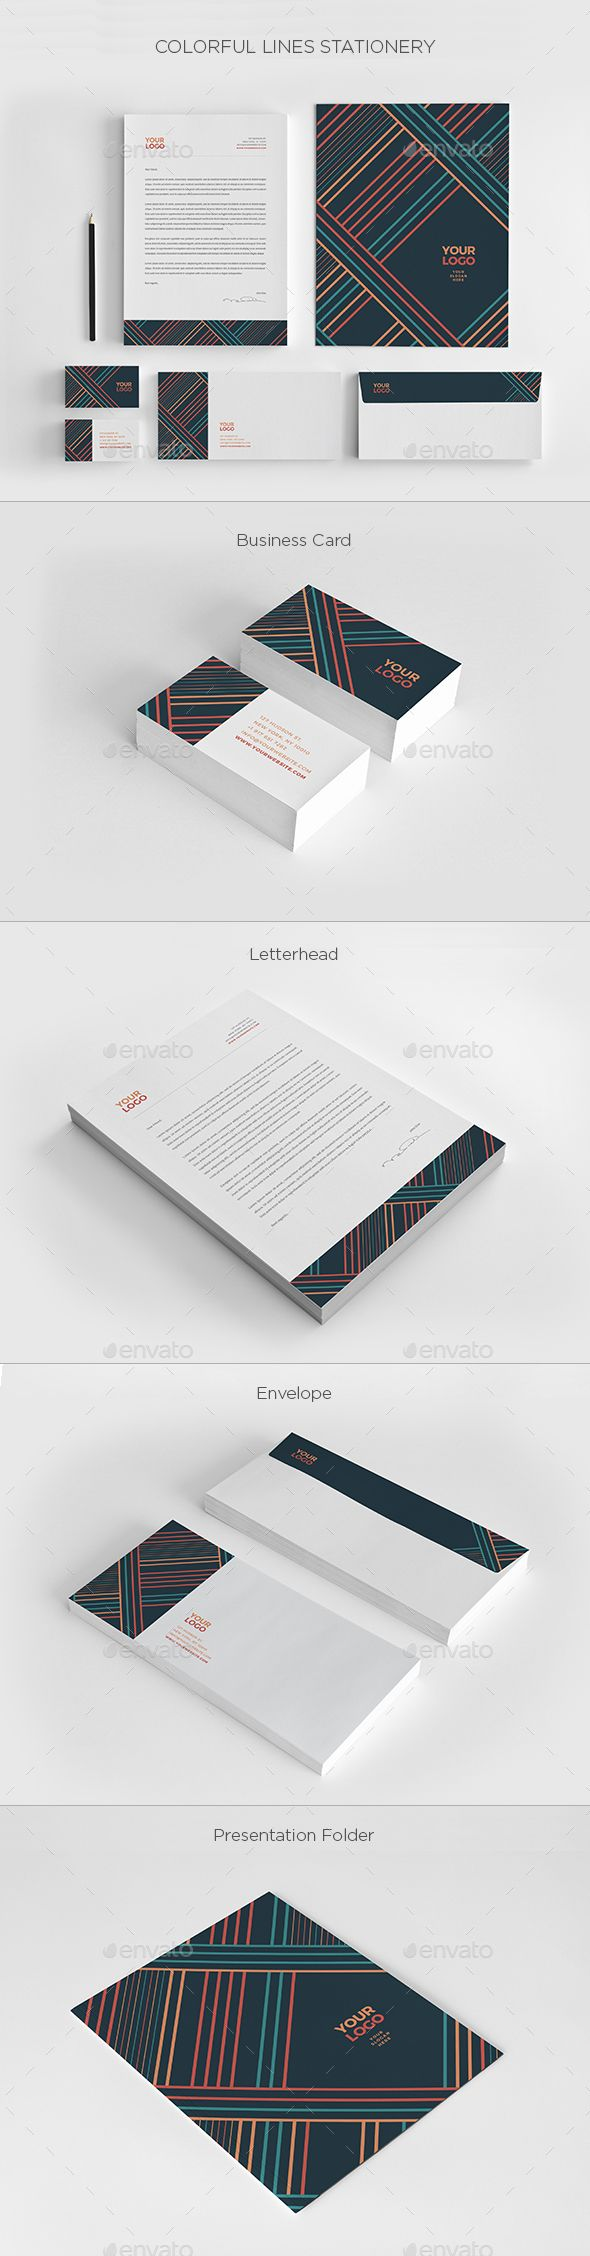 Colorful Lines Stationery - Stationery #Print #Templates Download here: https://graphicriver.net/item/colorful-lines-stationery/20062278?ref=alena994